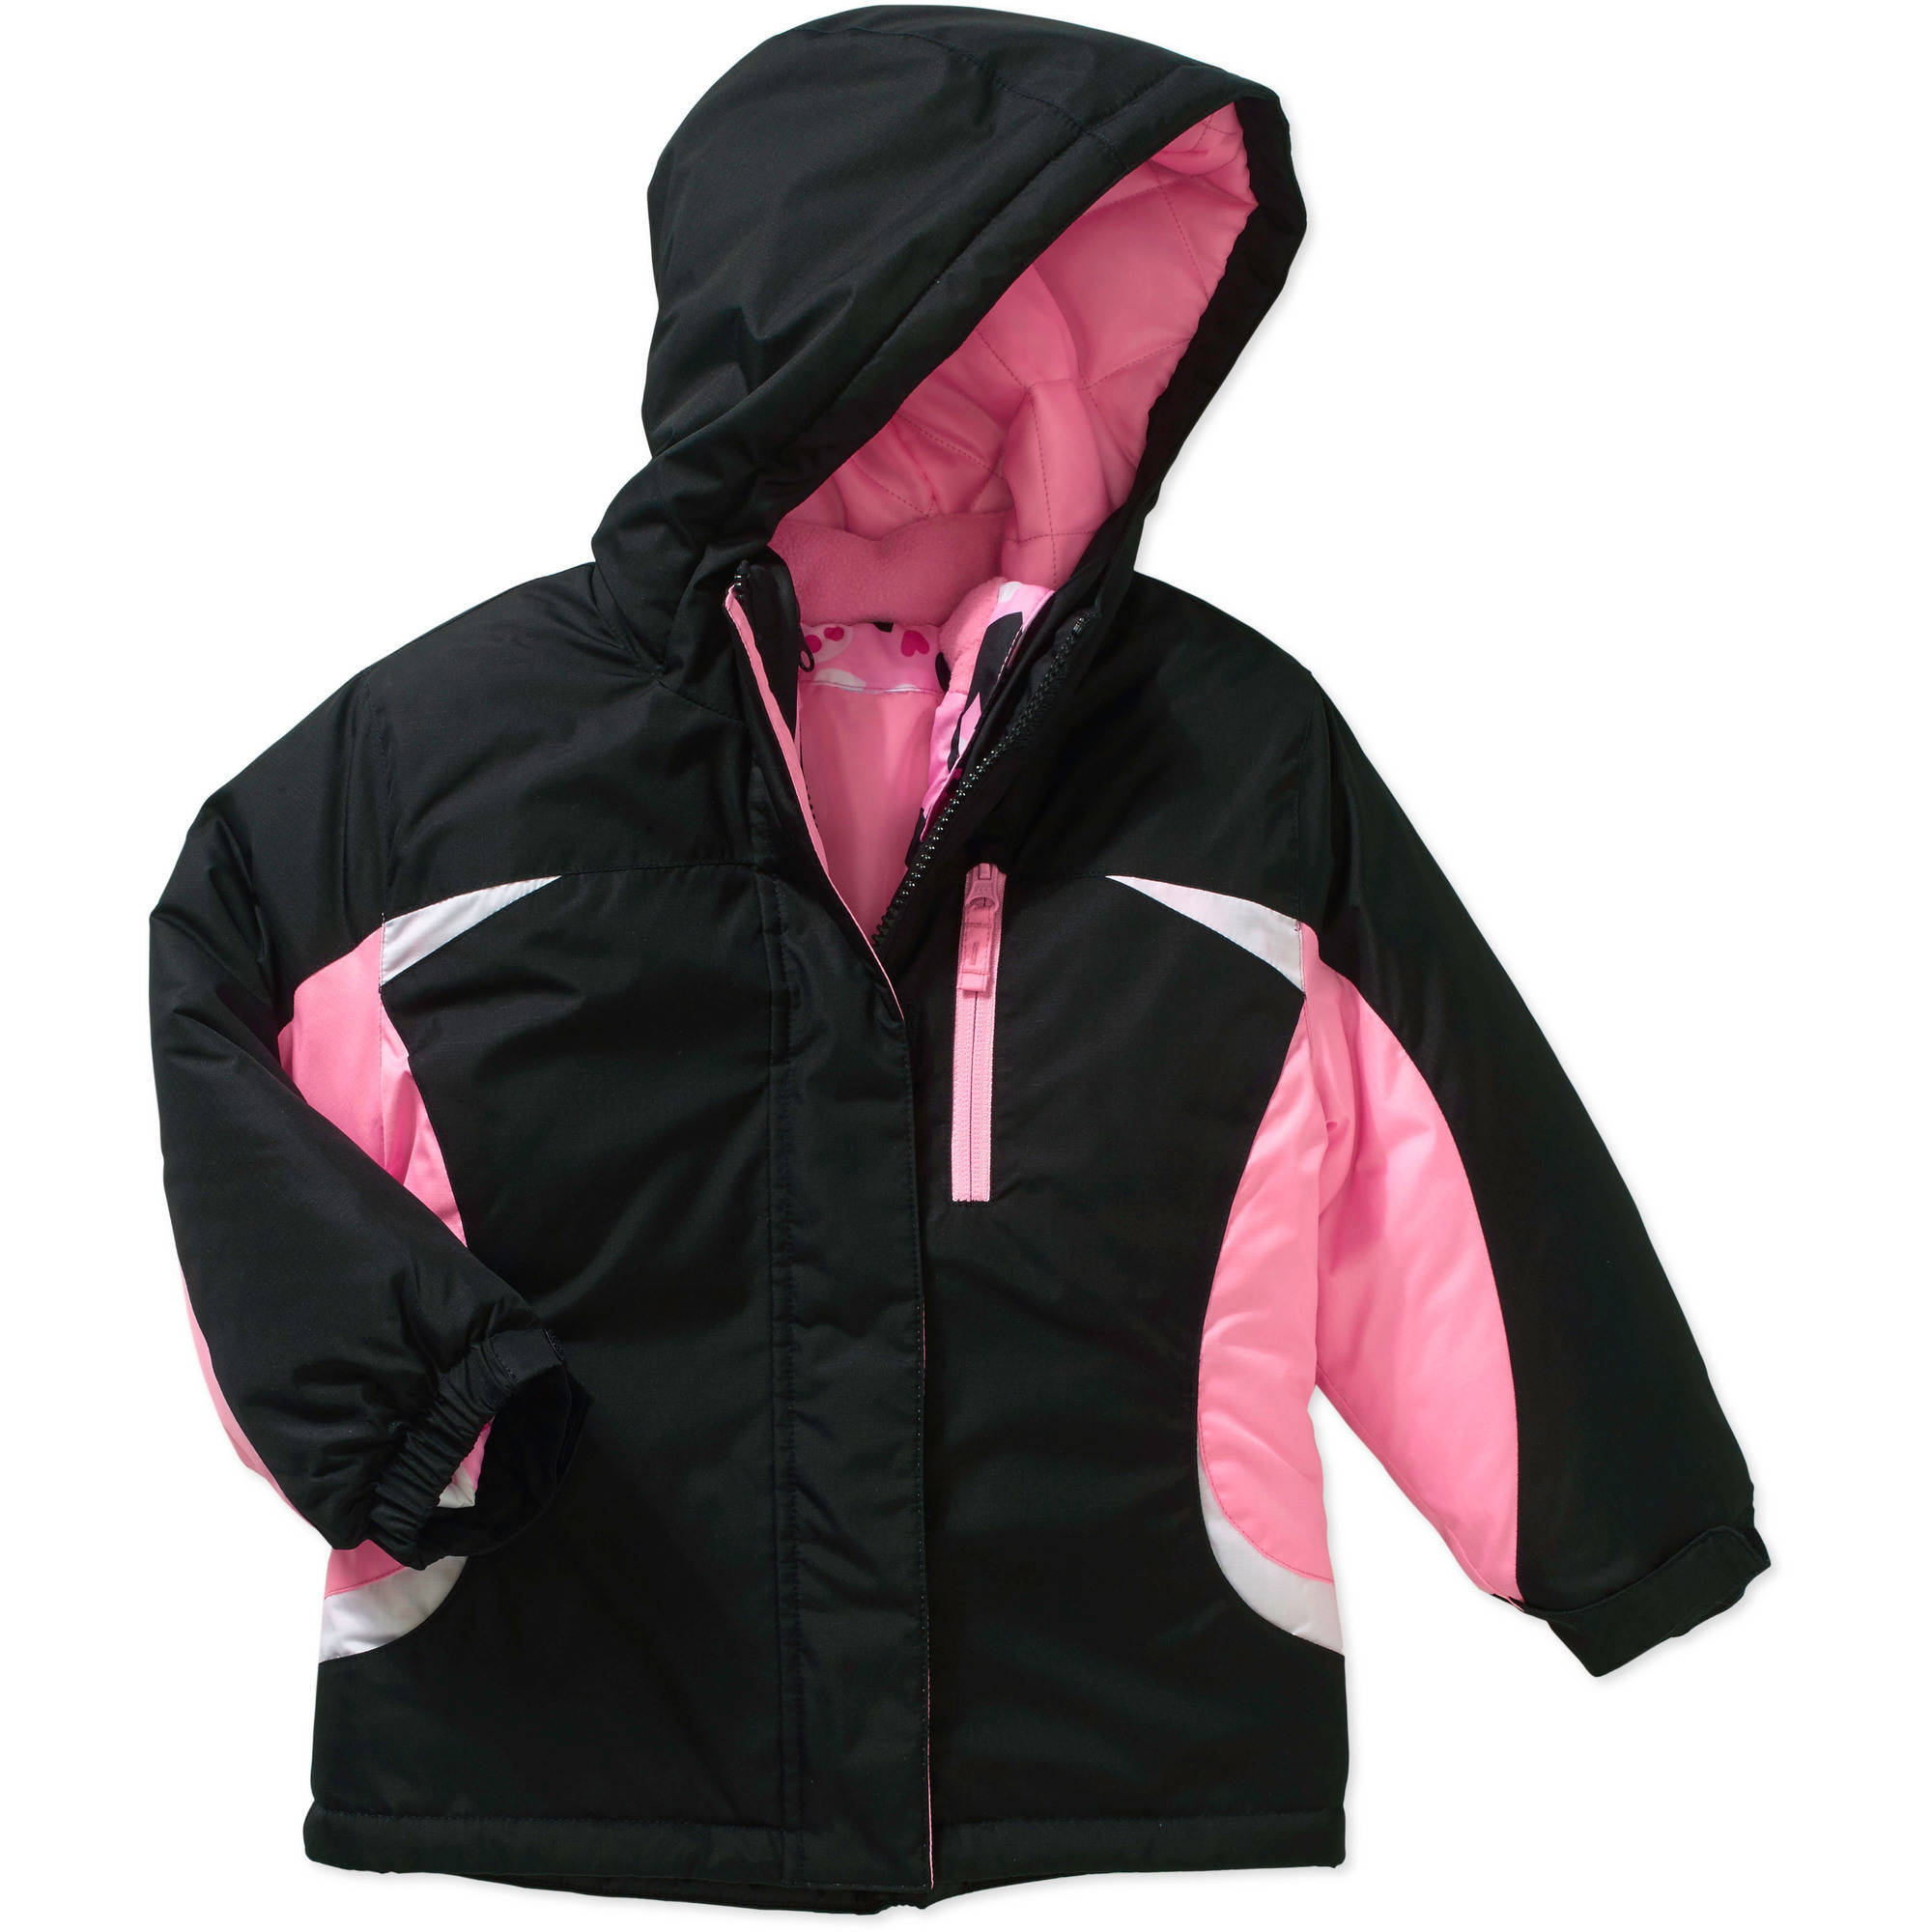 Healthtex Baby Toddler Girls' 3 in 1 Ski/Snowboard Jacket with Removable Inner Layer